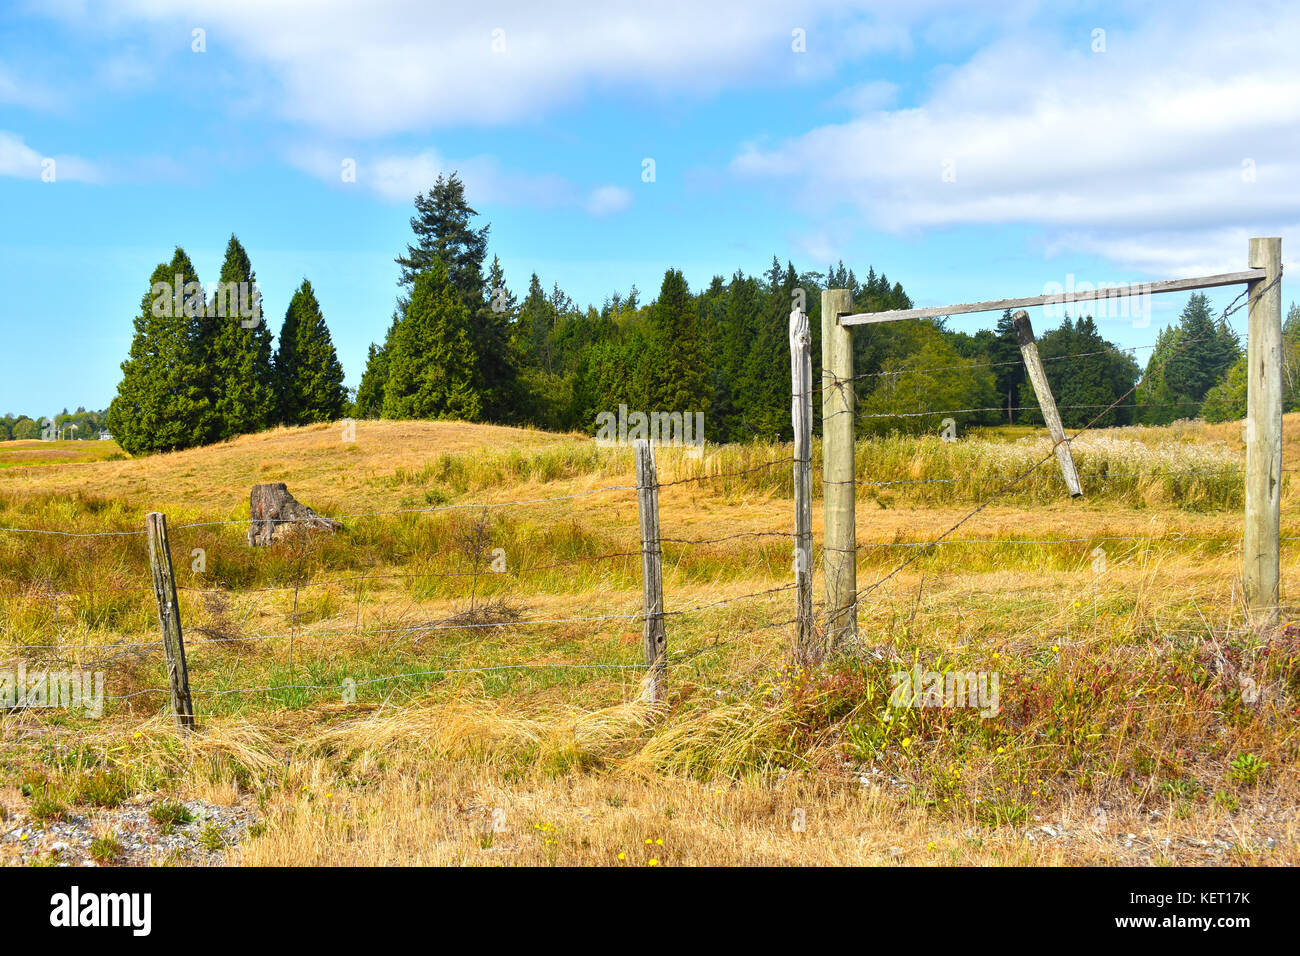 Beautiful Surreal Country Pastoral Scene With Open Field Beyond A Wooden Fence Evergreens Are In